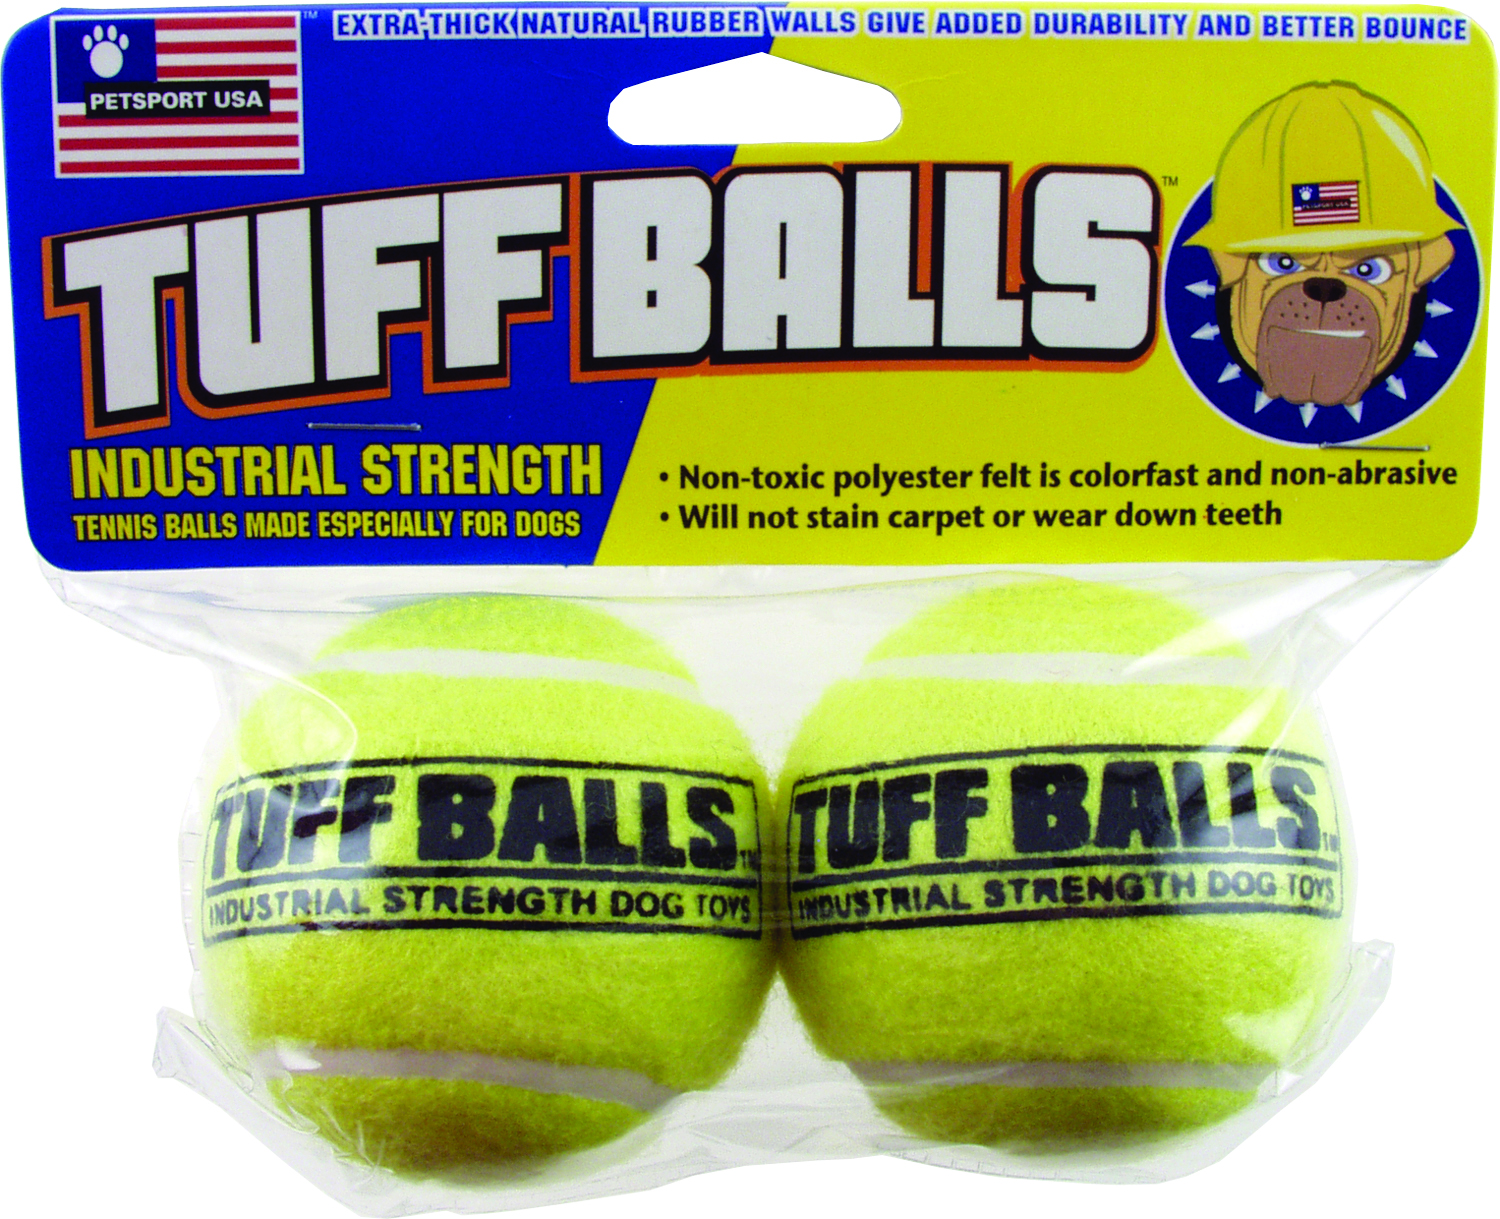 PETSPORT USA Tuff Balls